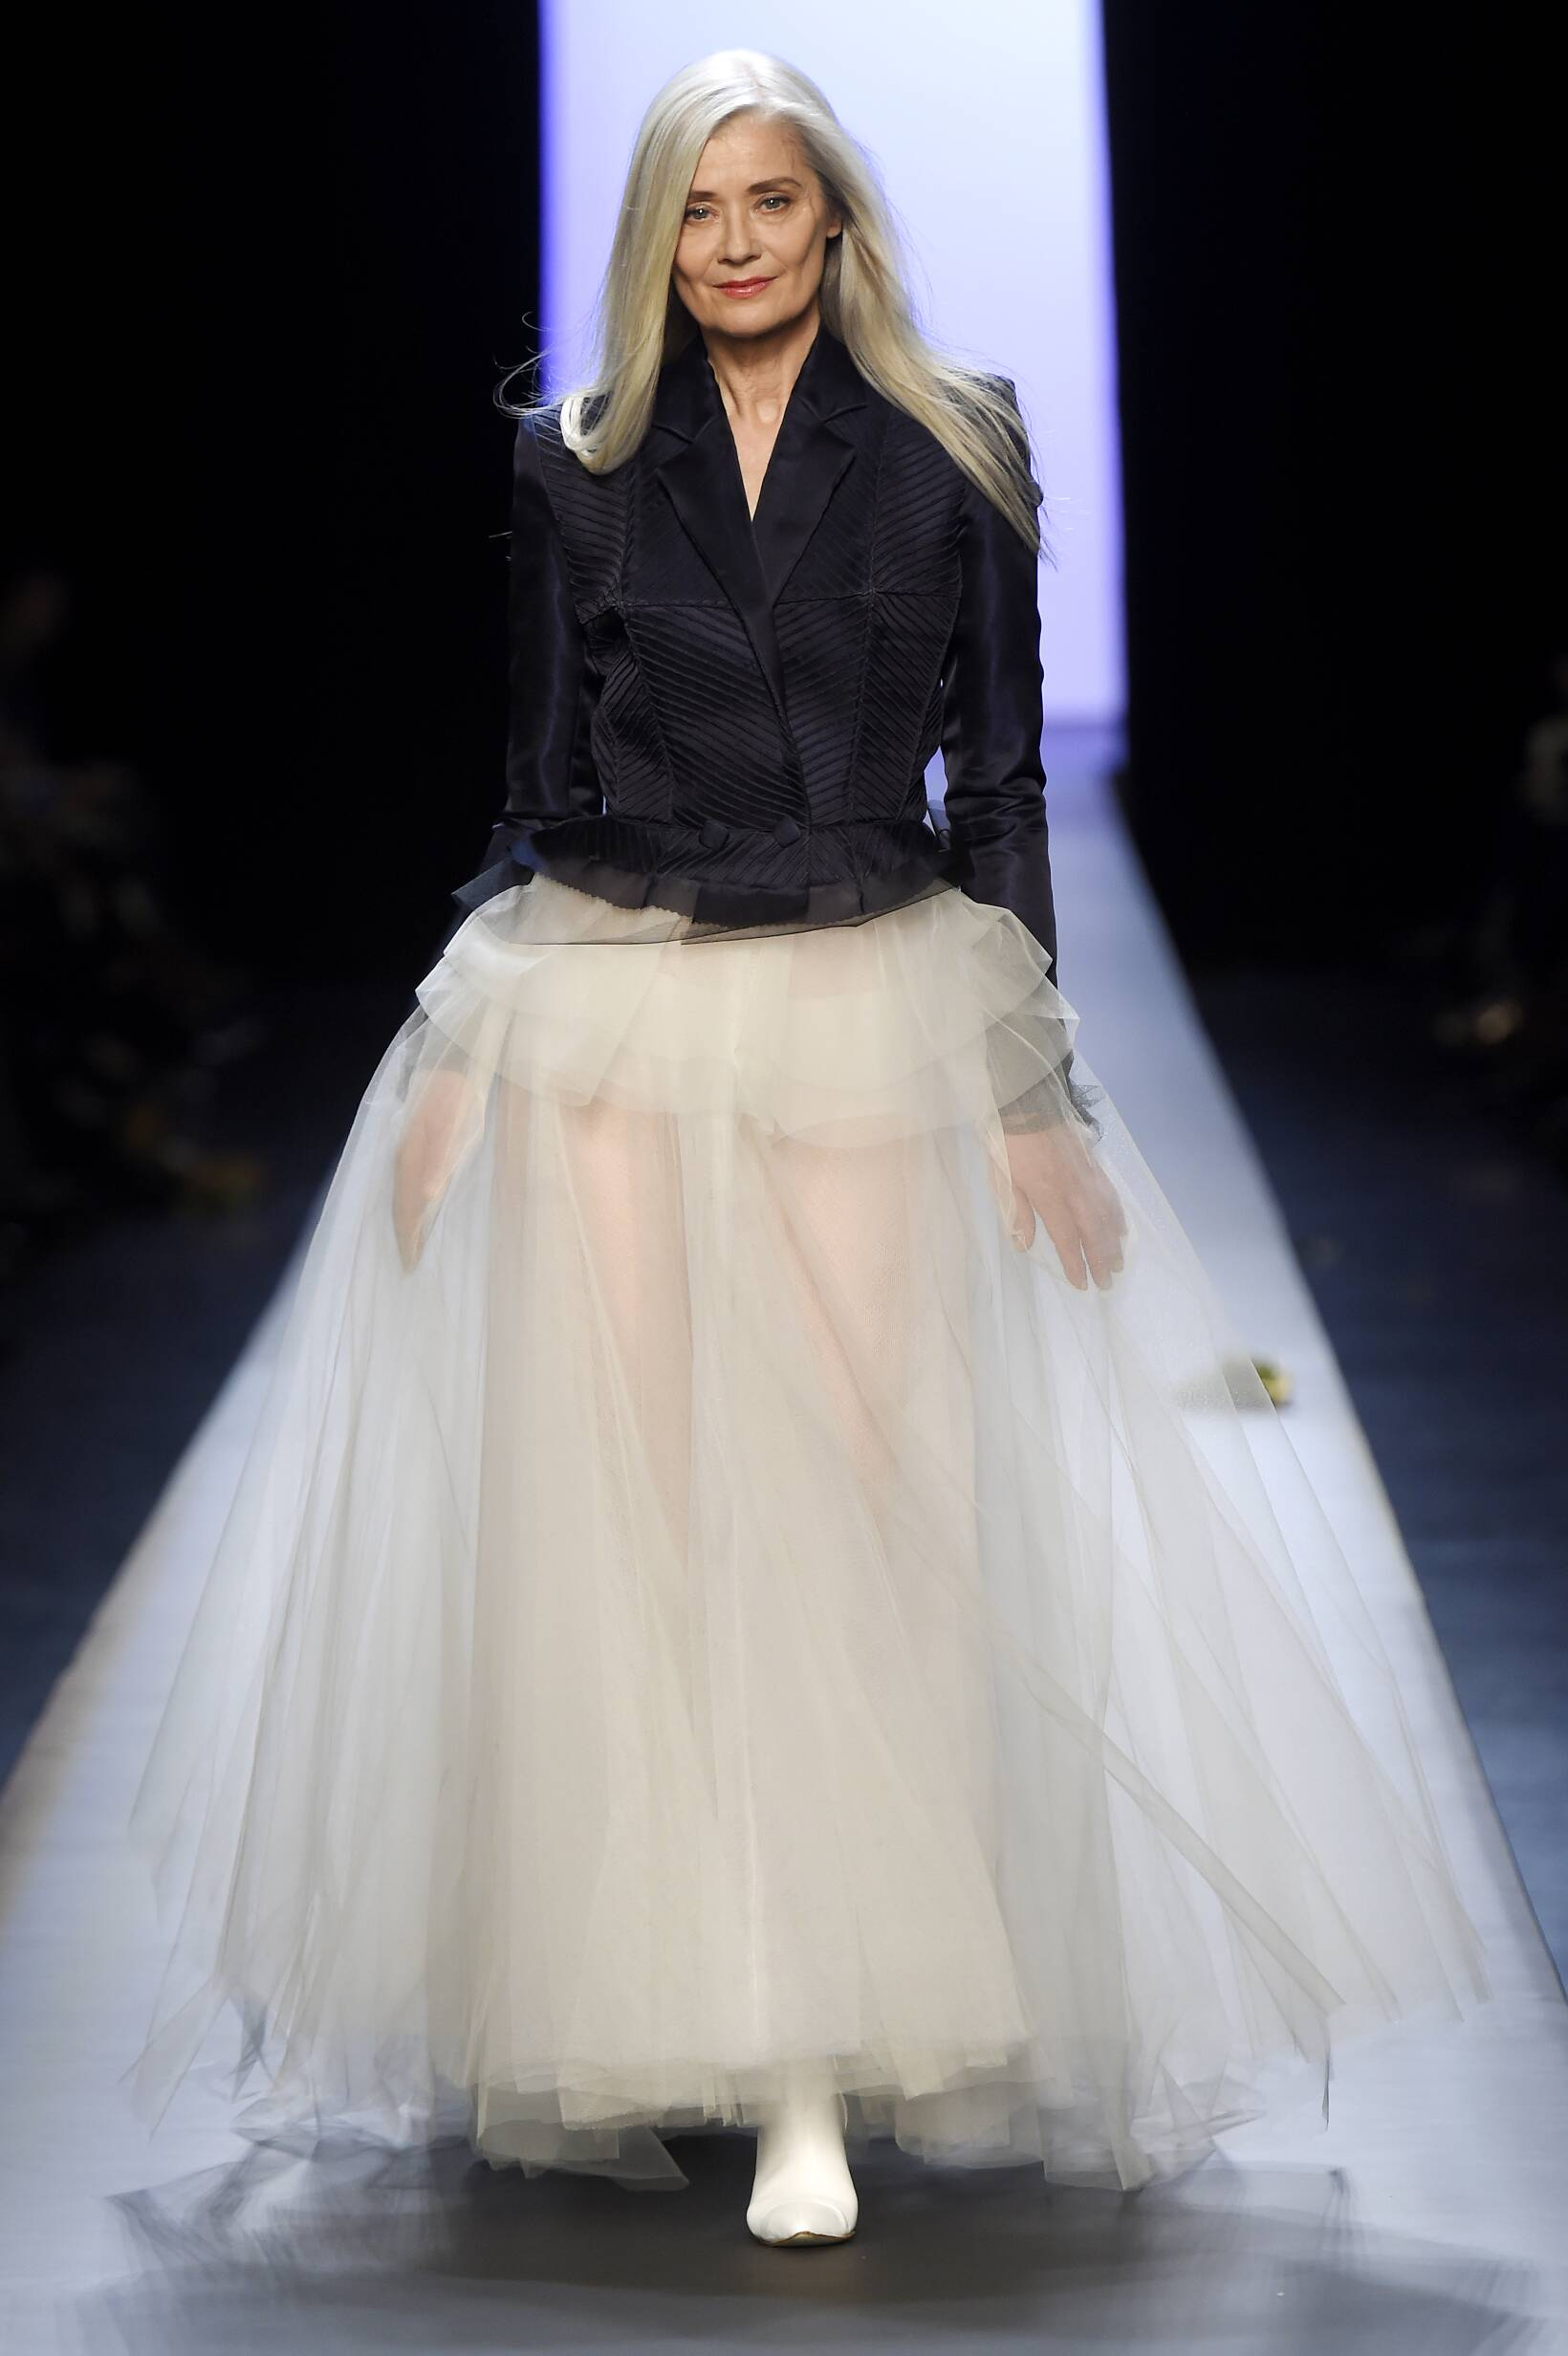 Jean Paul Gaultier Haute Couture Fashion